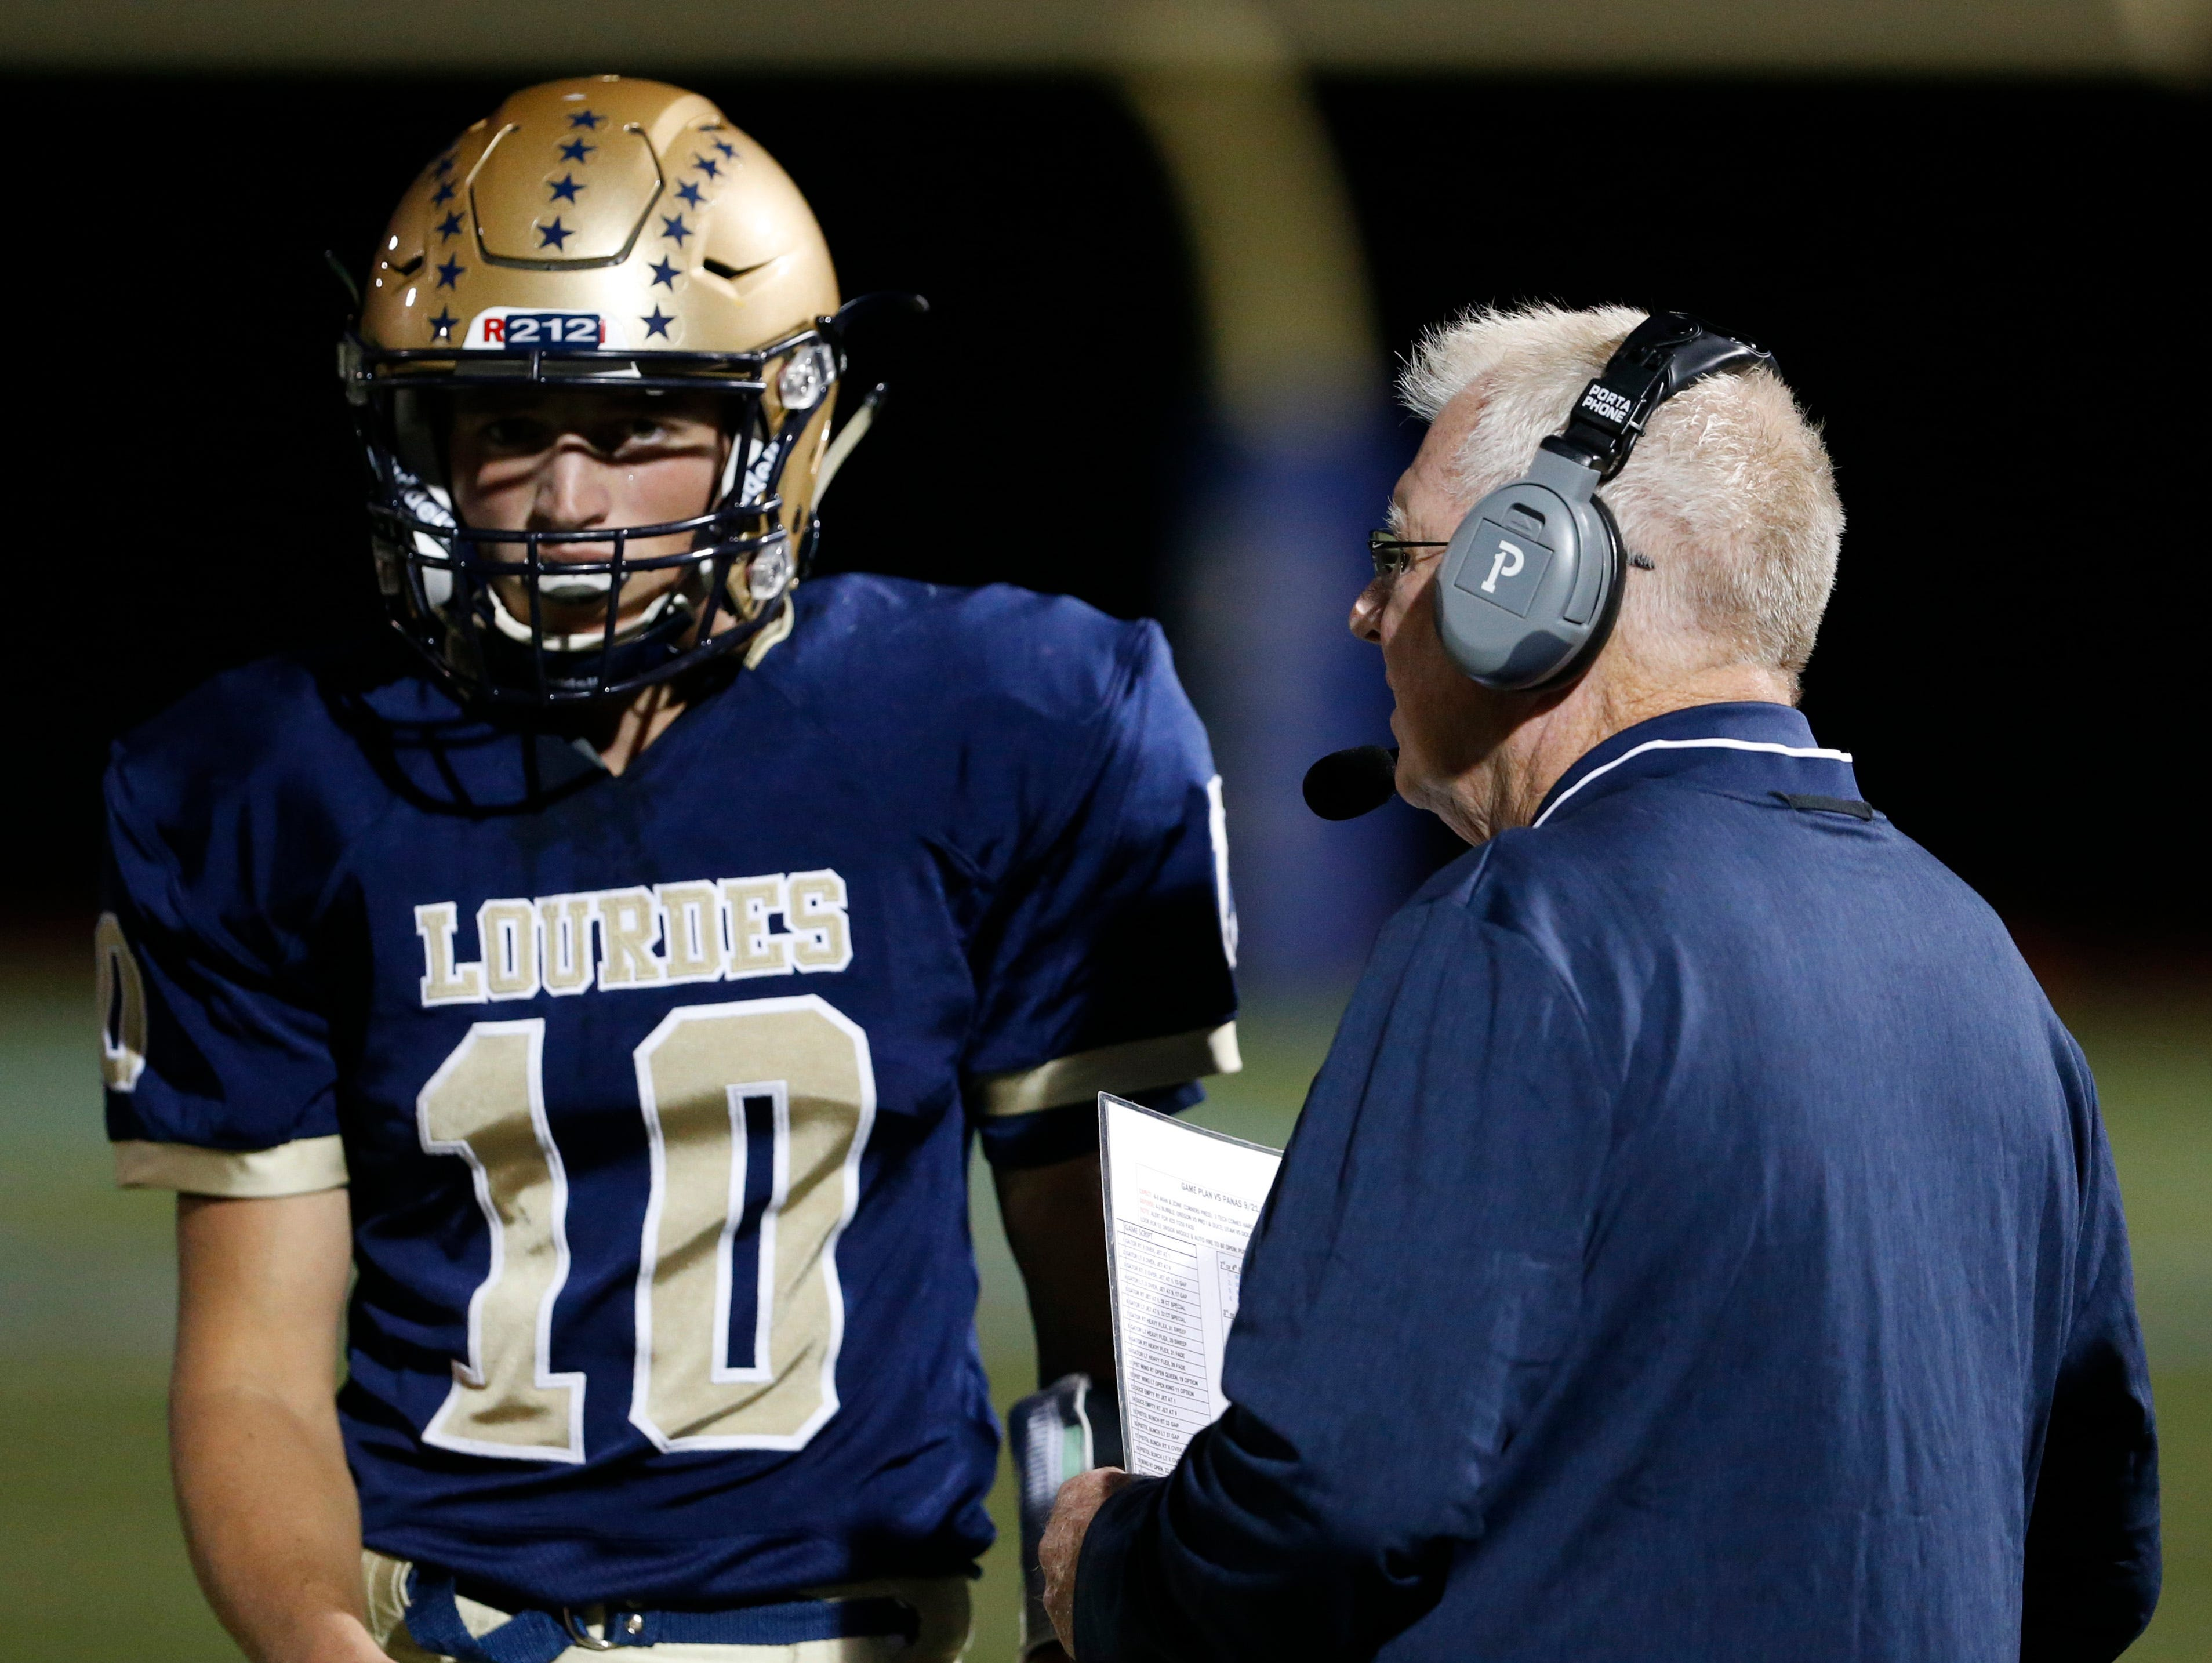 Lourdes quarterback Max Kras gets instructions from head coach Brian Walsh during a Sept. 21 game against Walter Panas.